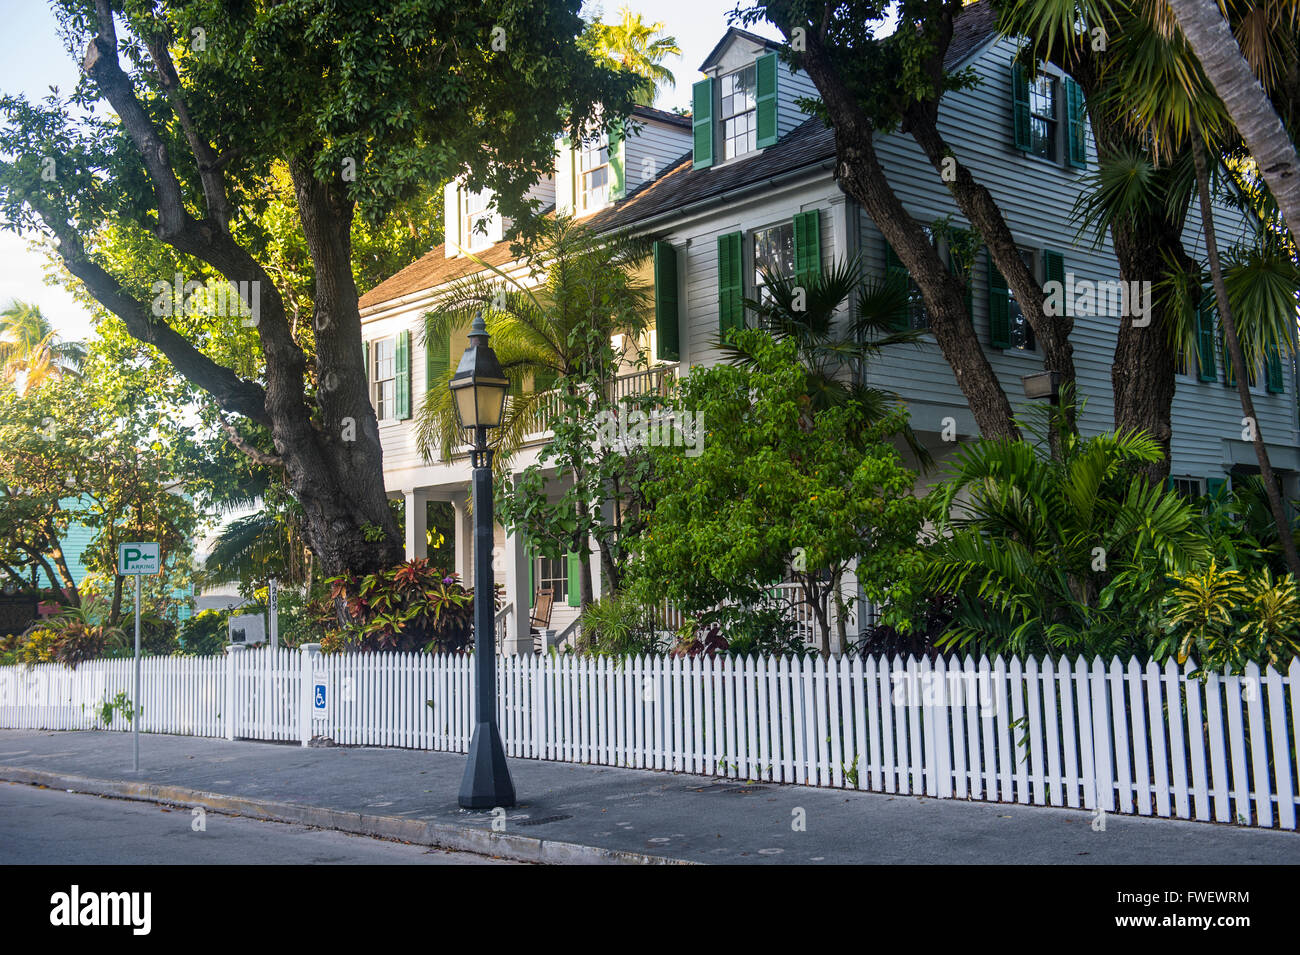 Colonial house in Key West, Florida, United States of America, North America - Stock Image